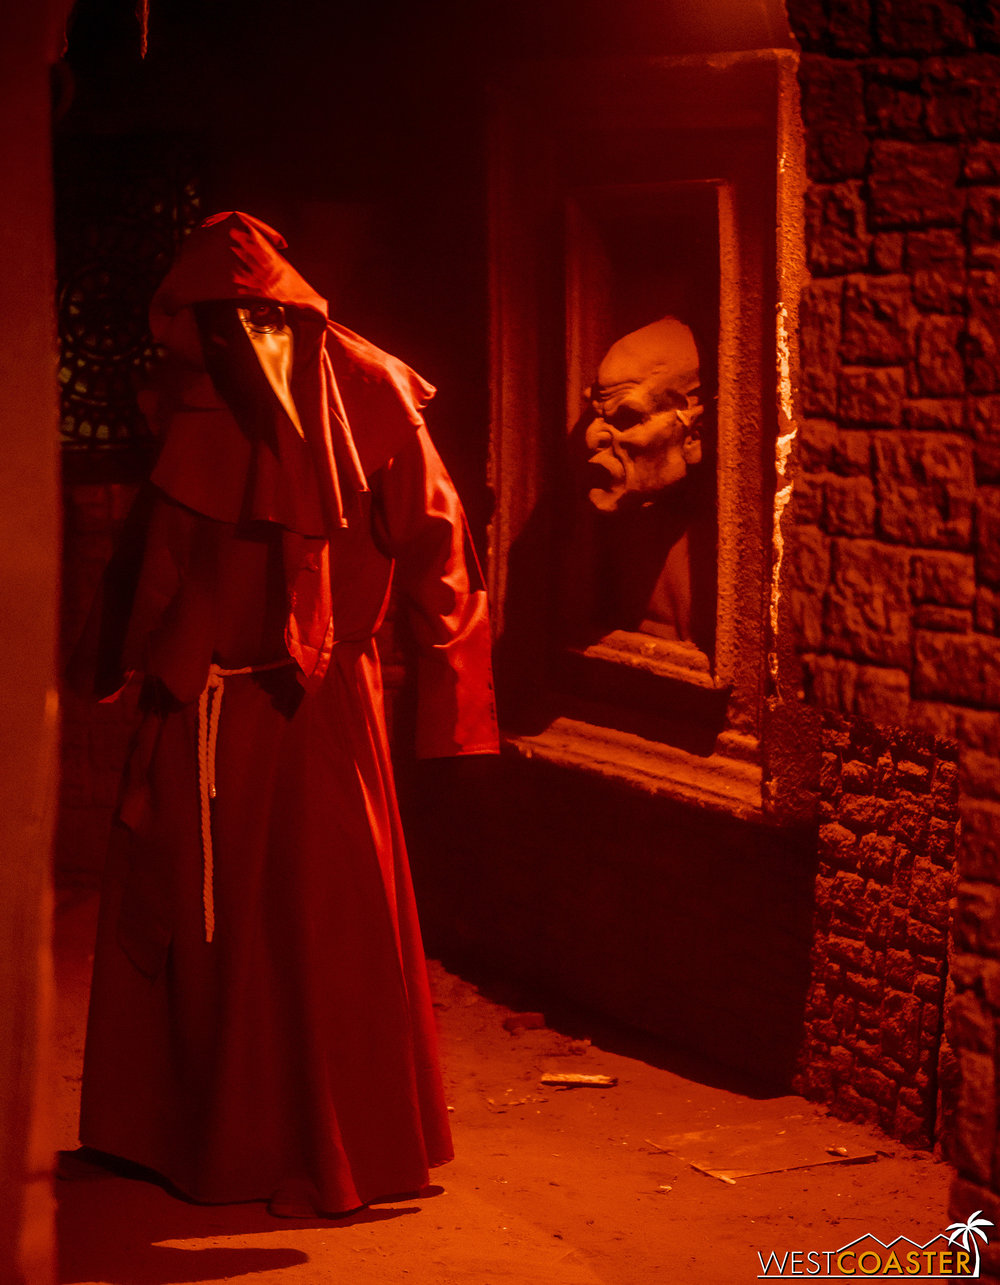 A member of the Raven Cult stalks the corridors of The Catacombs.